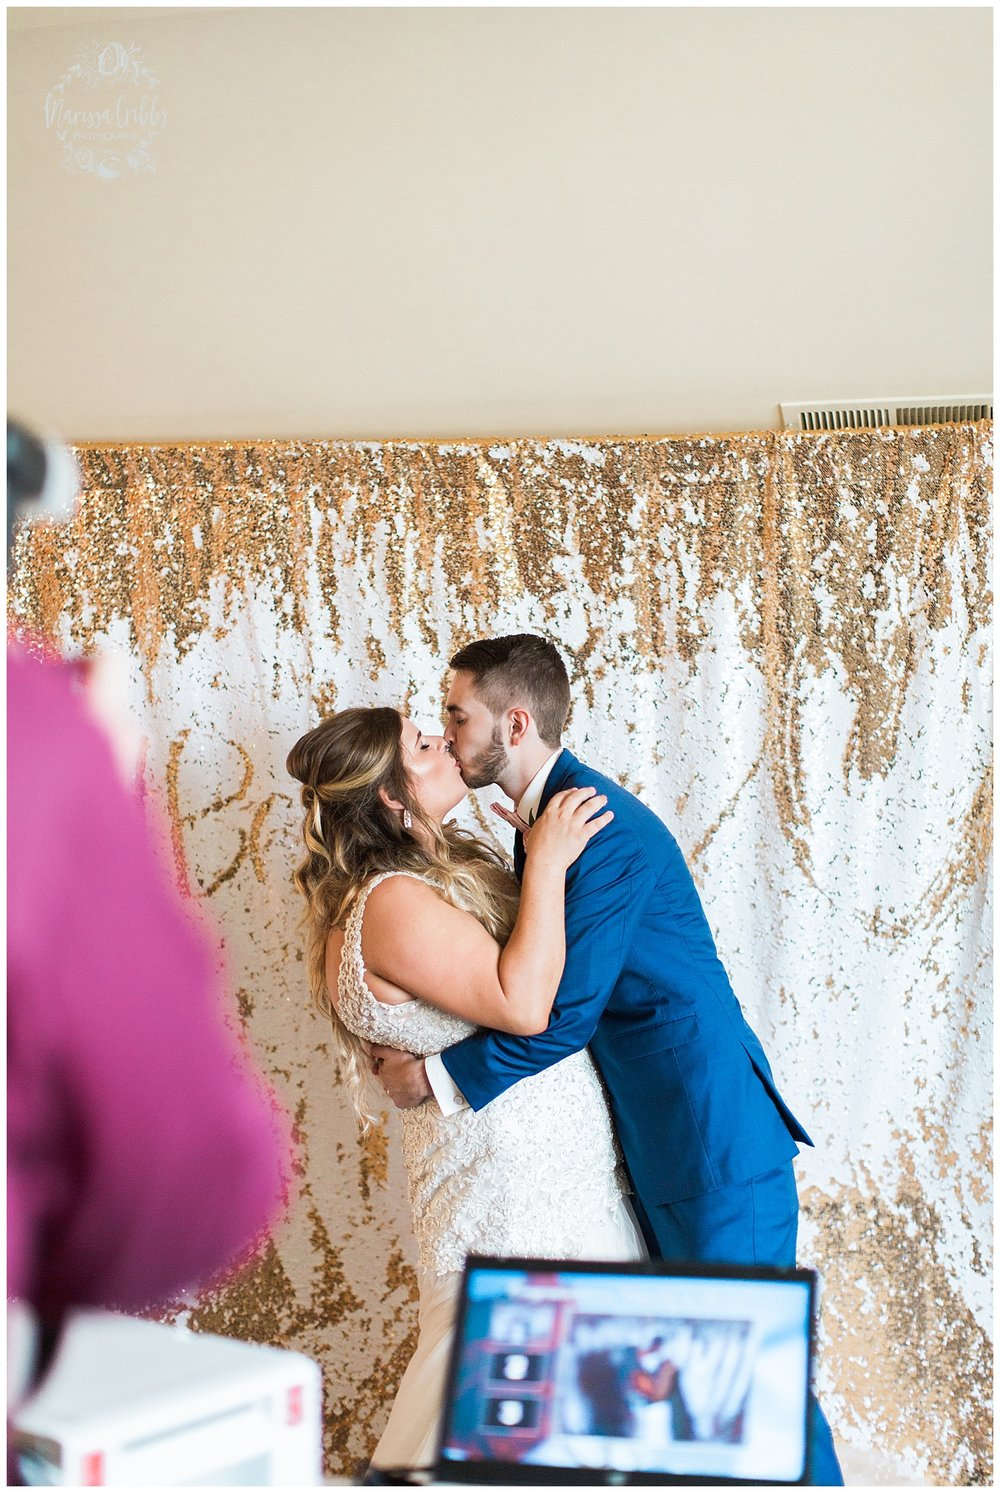 DANI & MICHAEL MARRIED | HAWTHORNE HOUSE WEDDING | MARISSA CRIBBS PHOTOGRAPHY_2683.jpg